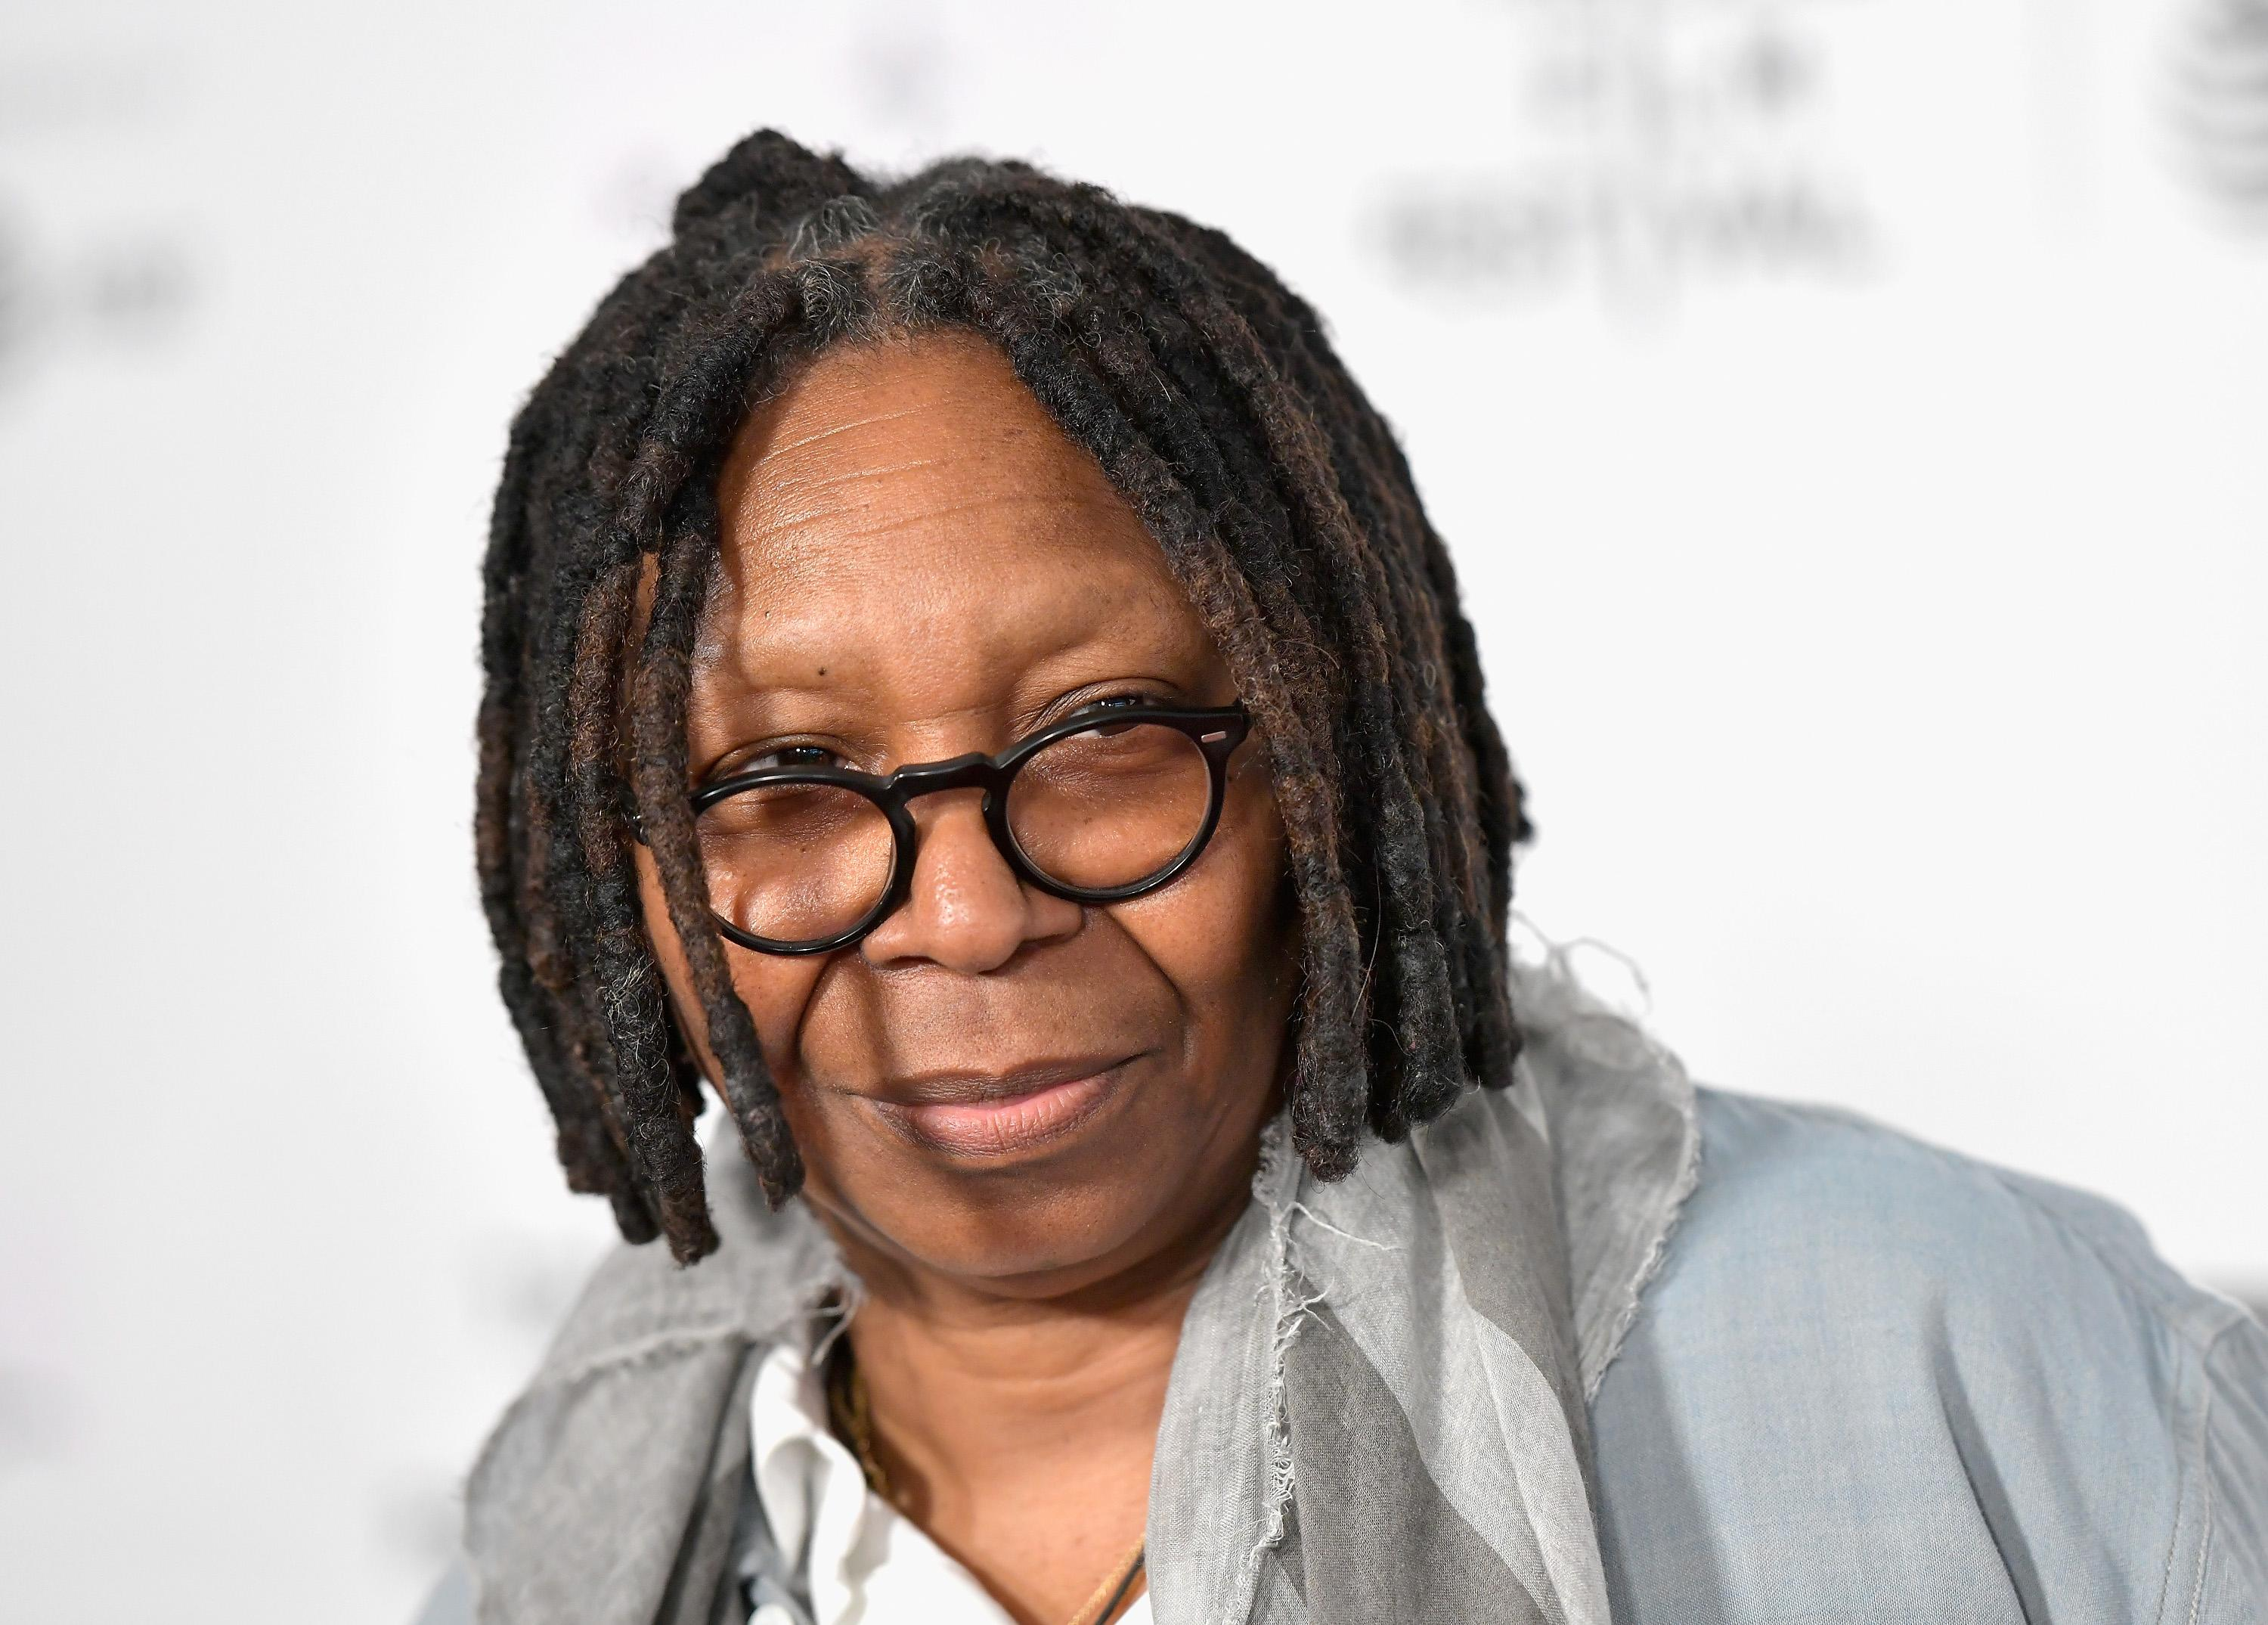 whoopi goldberg had pneumonia in both lungs and was septic